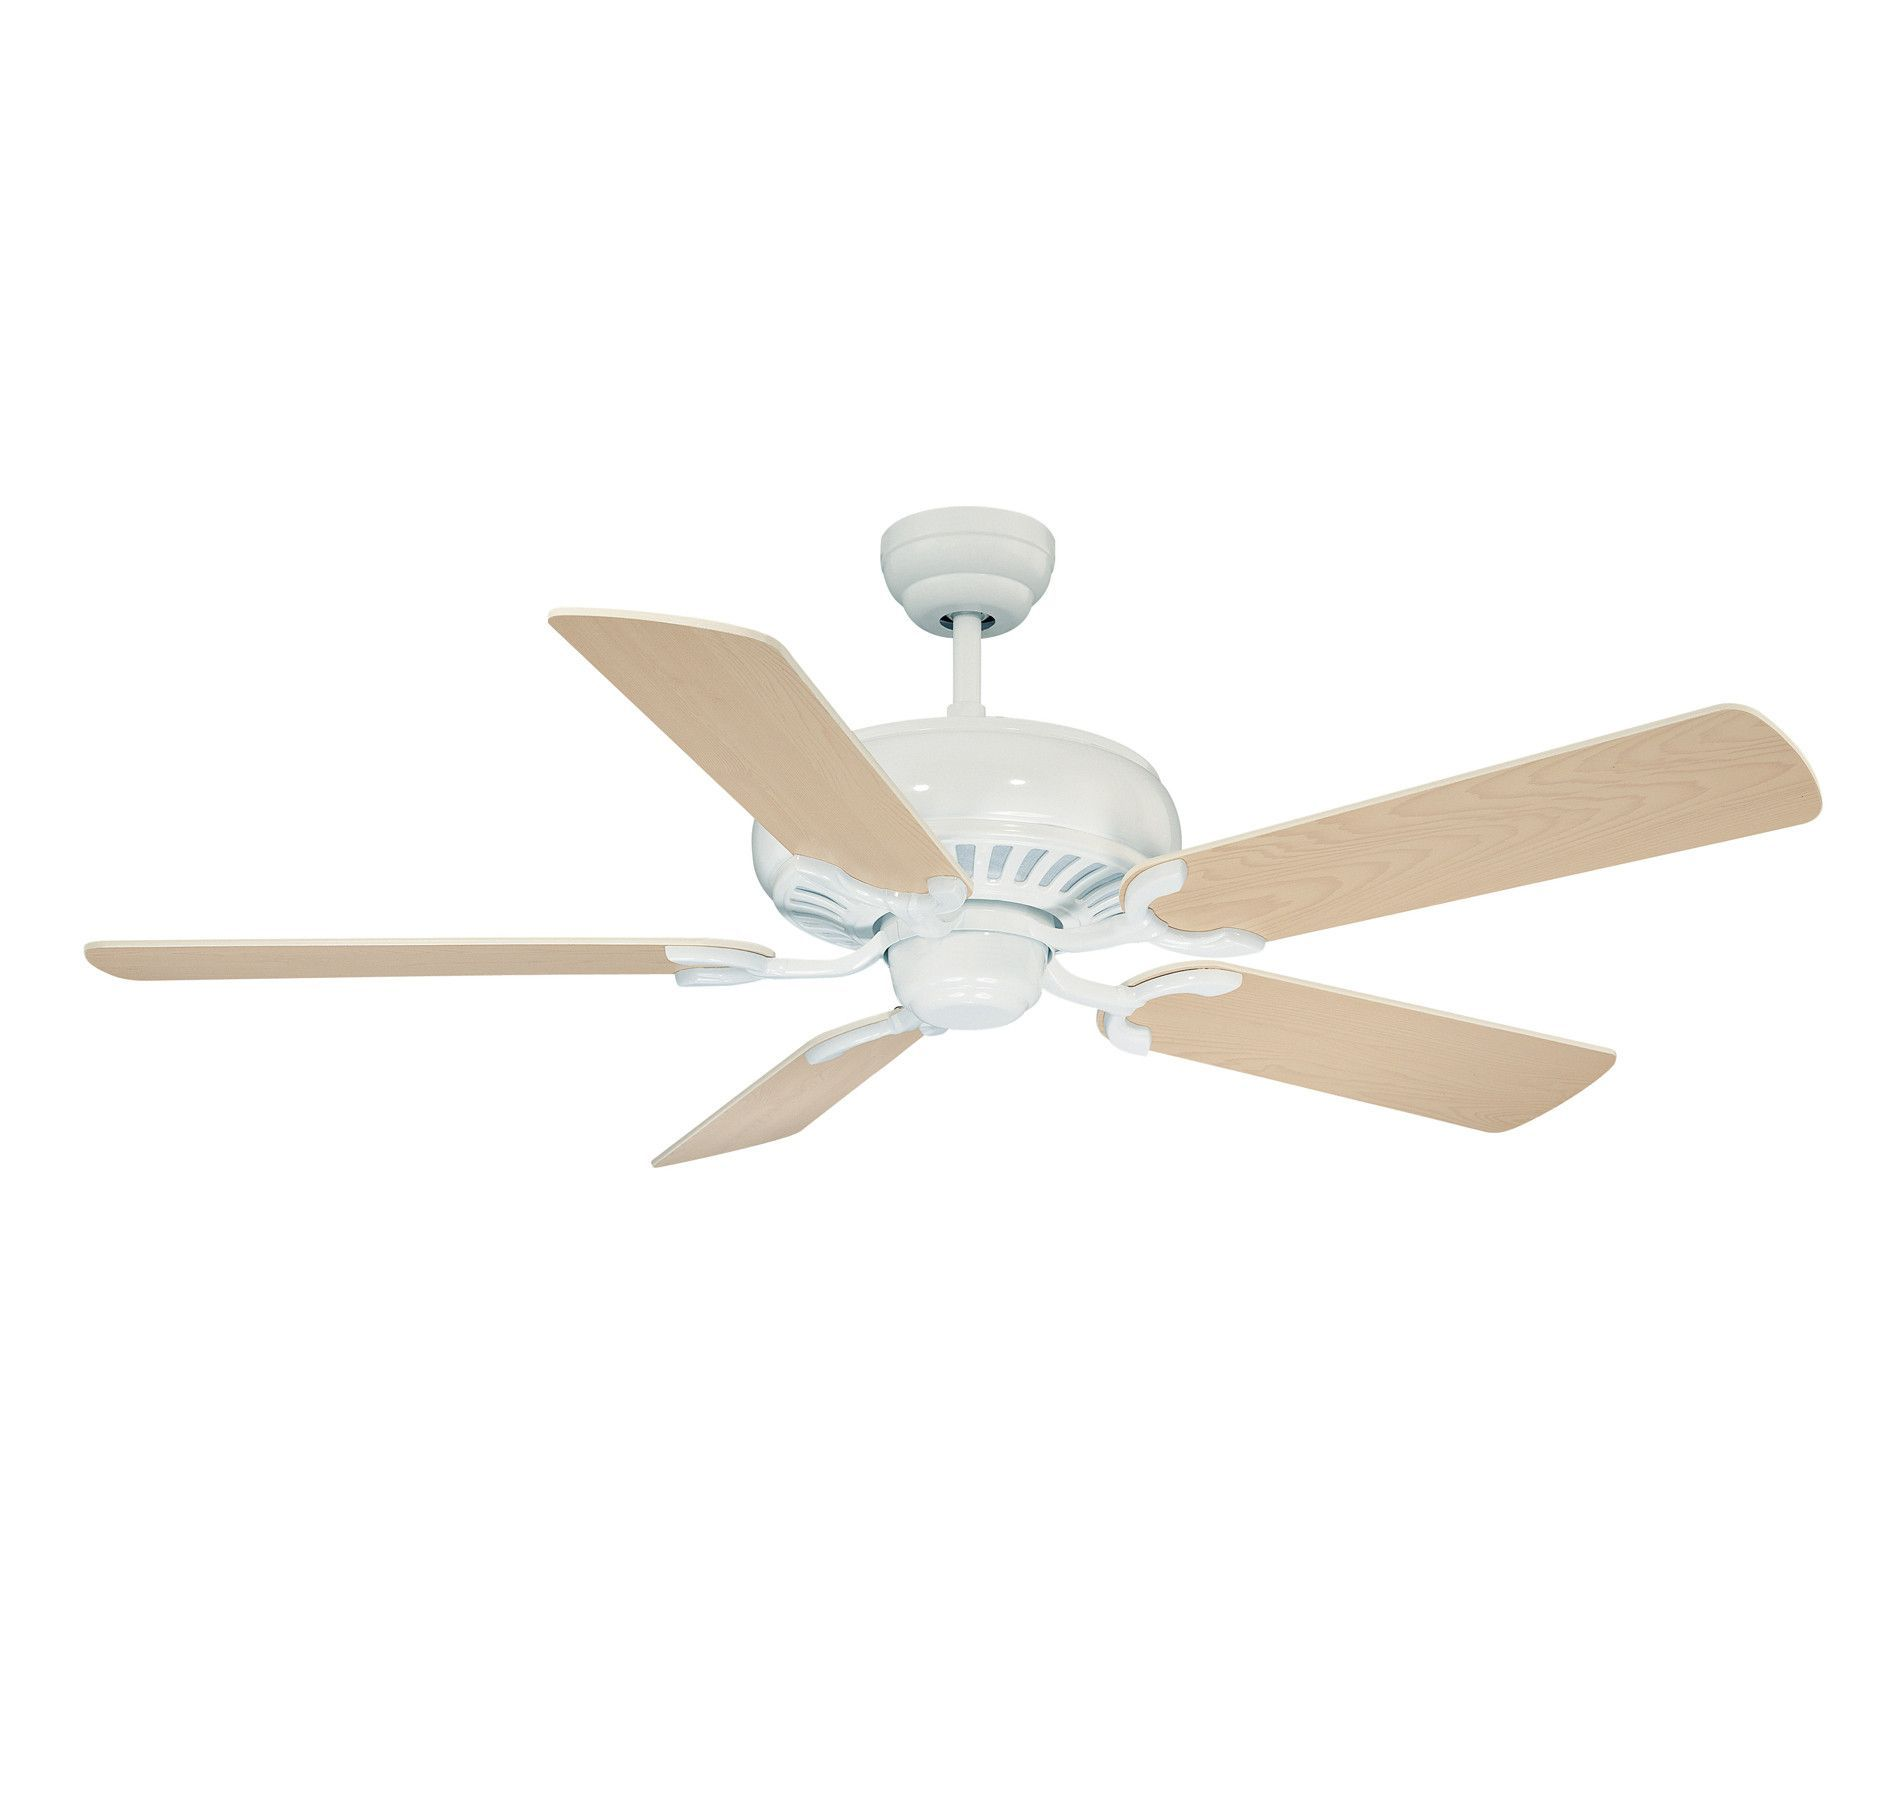 "Savoy The Pine Harbor 52"" Ceiling Fan"